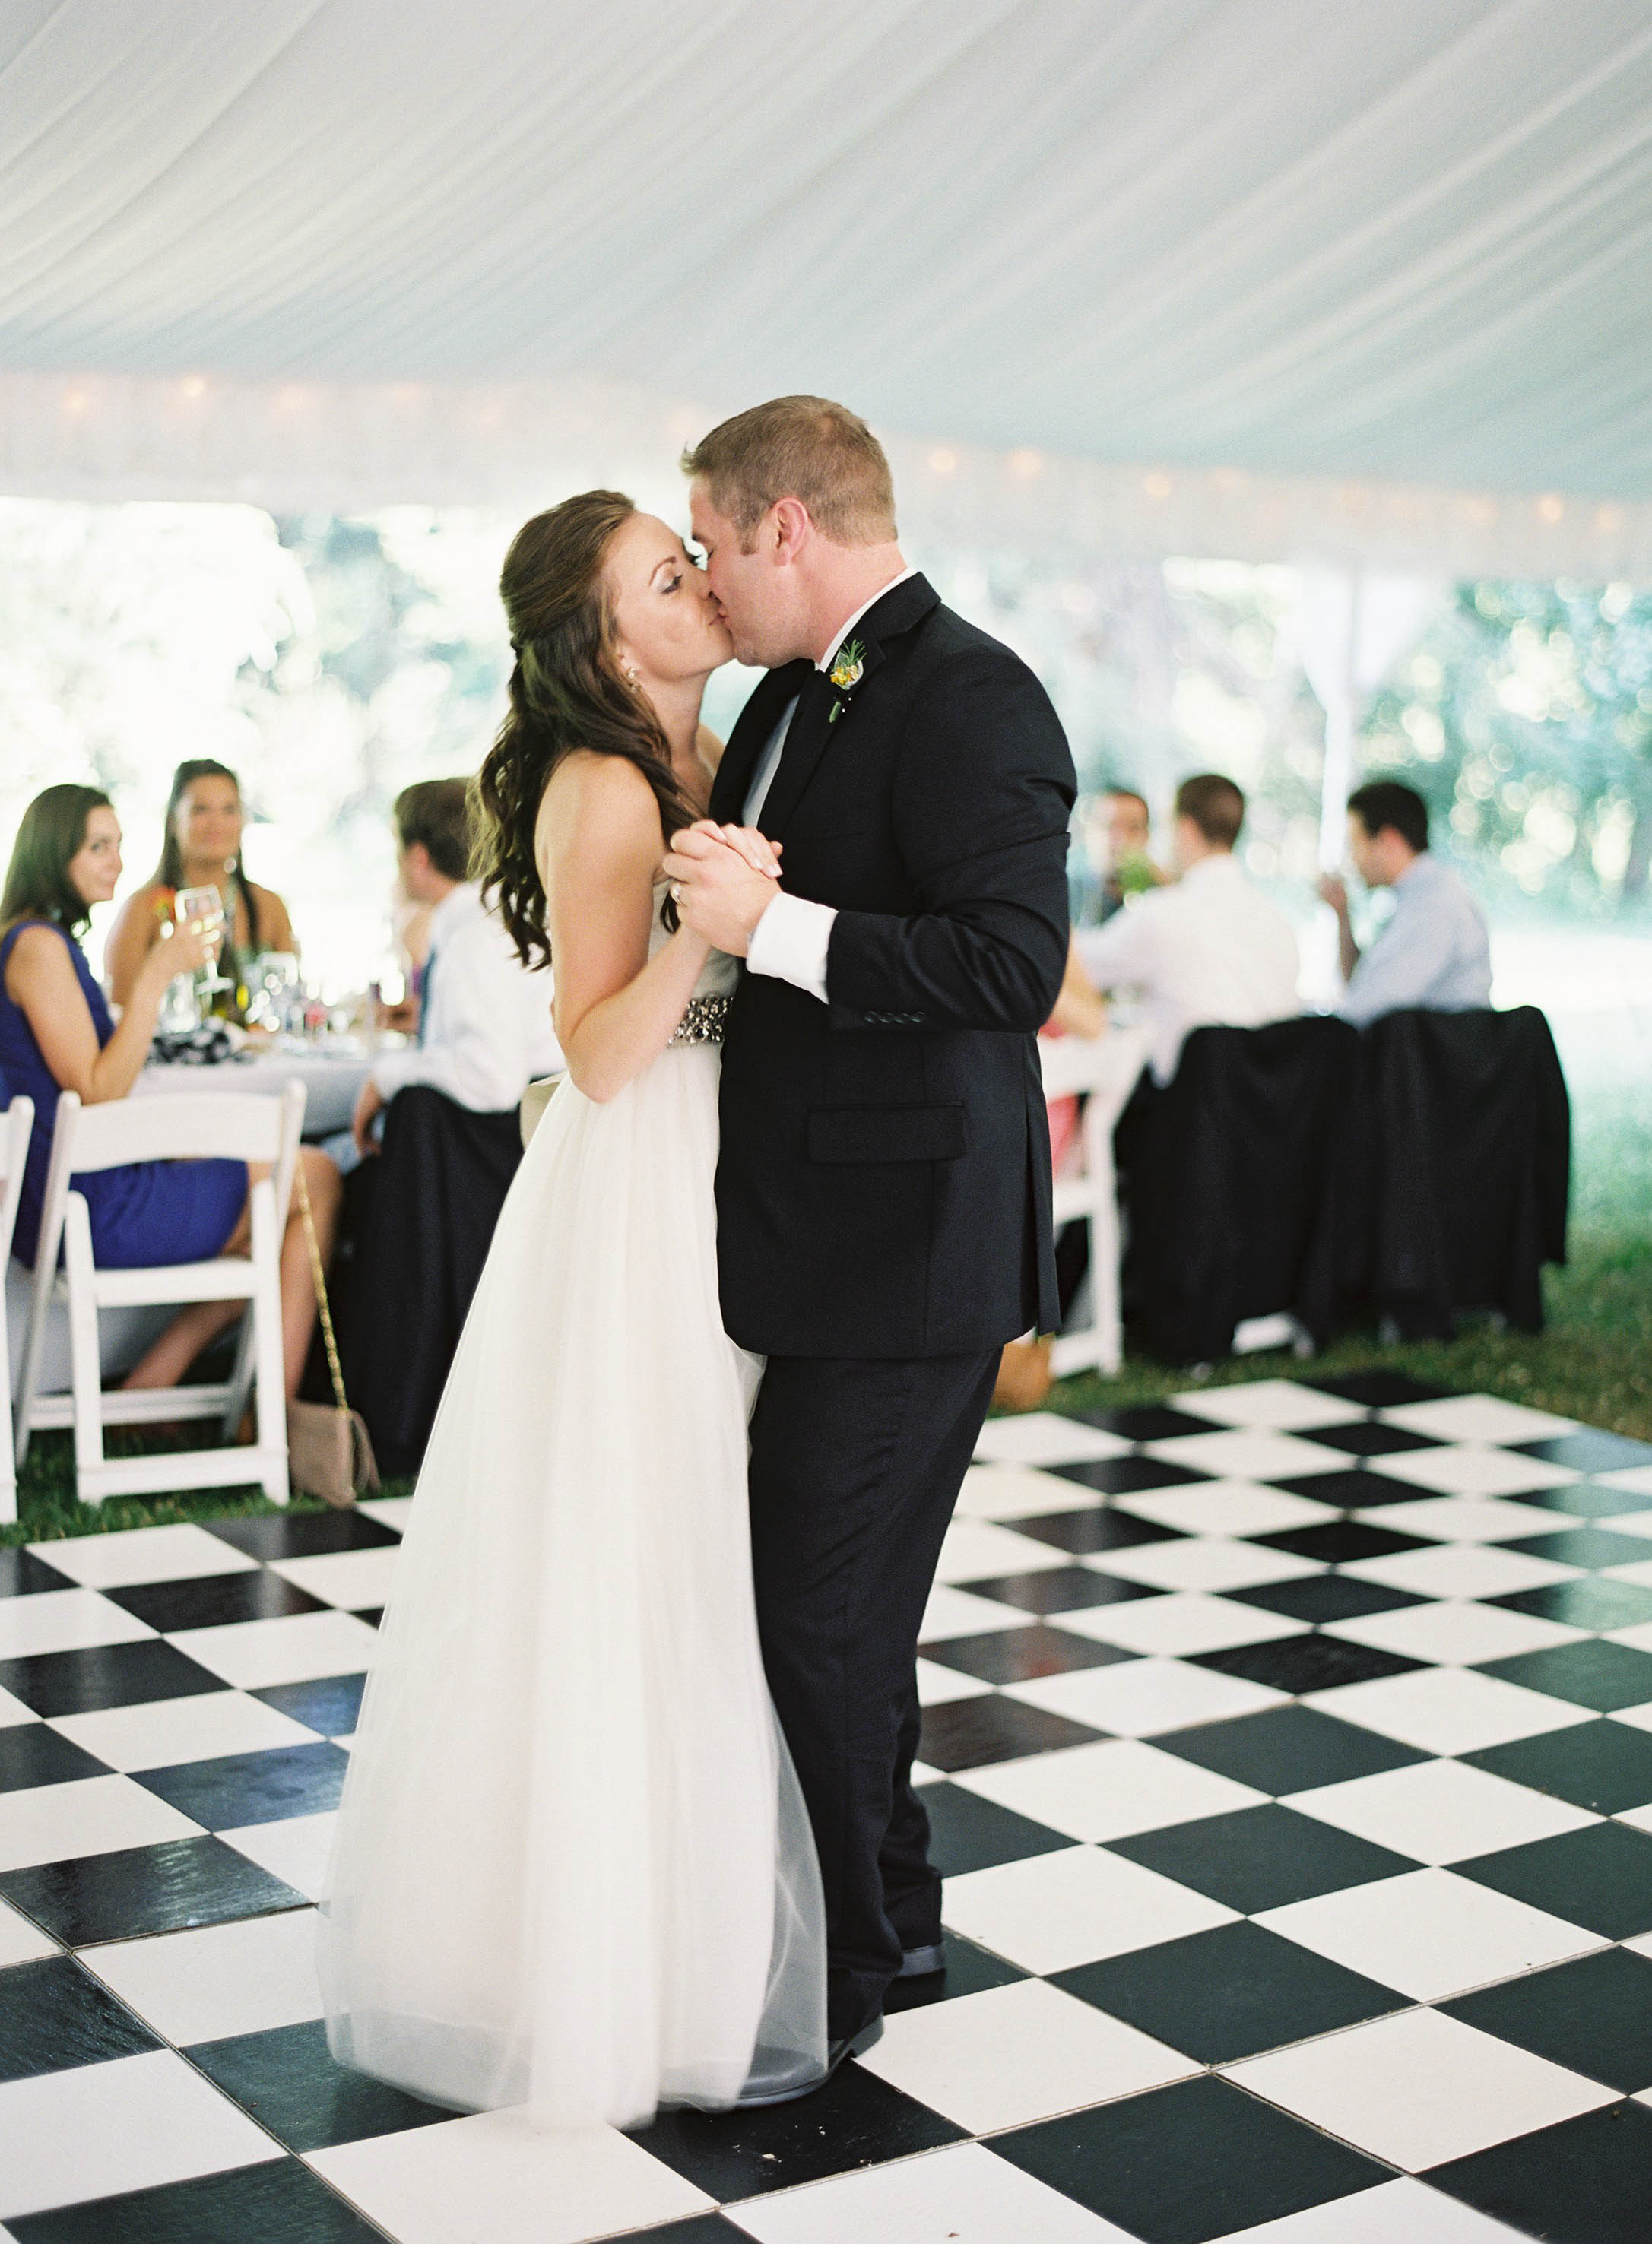 Real Weddings, Summer Real Weddings, First dance, Dance floor, Summer wedding, Checkered, East Coast Real Weddings, East Coast Weddings, Picnic Real Wedding, Picnic Wedding, Sophisticated Real Weddings, Sophisticated Weddings